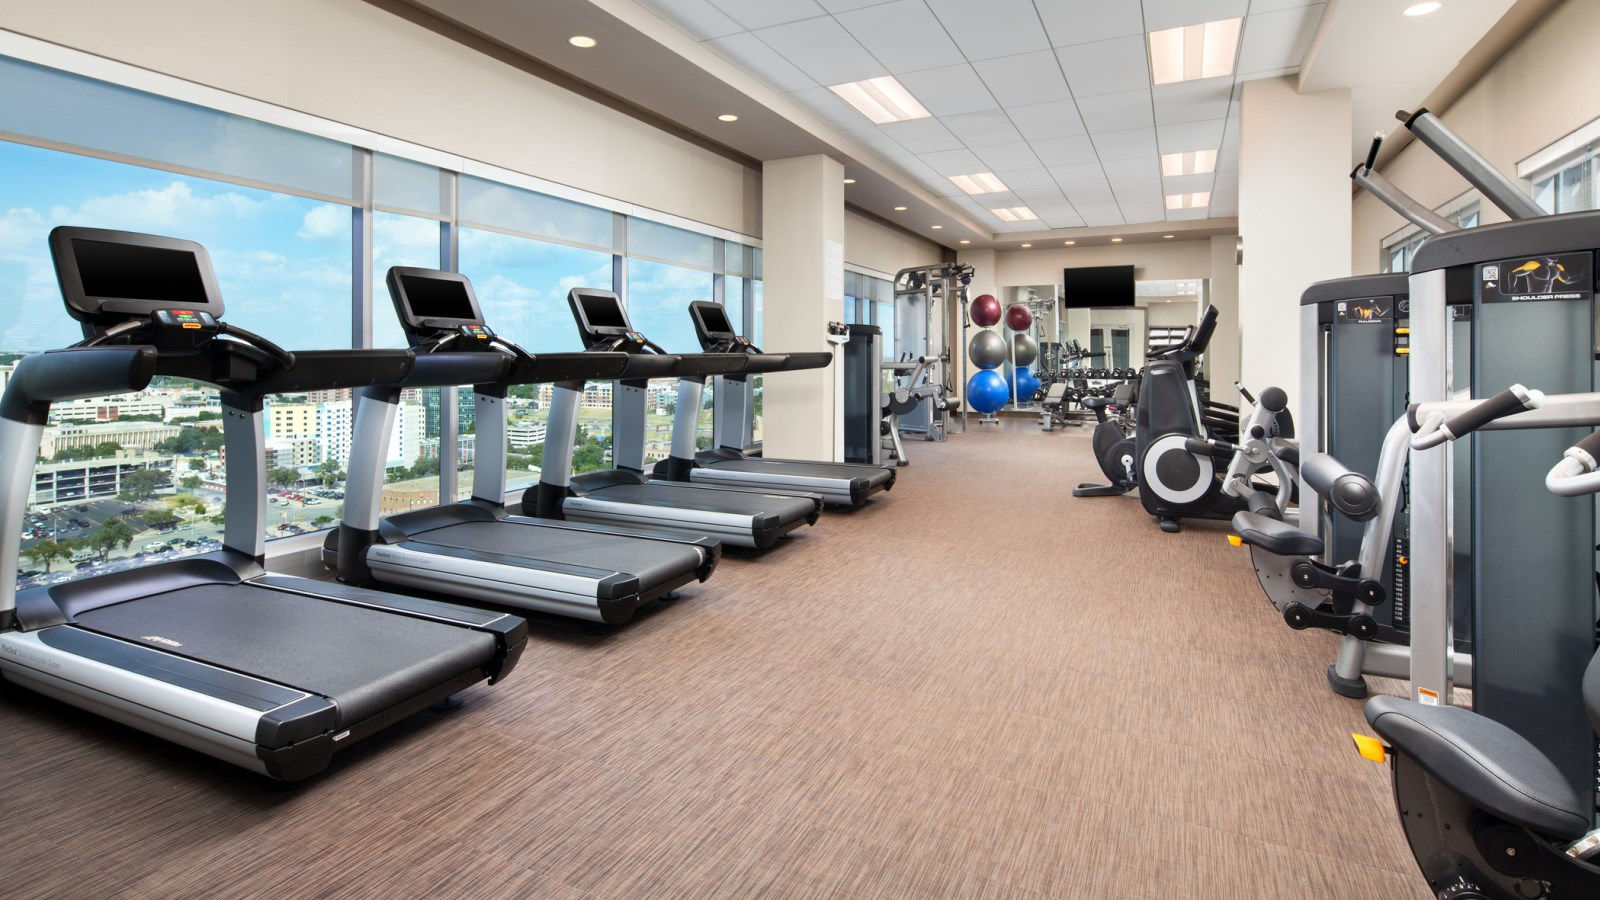 How To Find A Good Fitness Studio In East London?